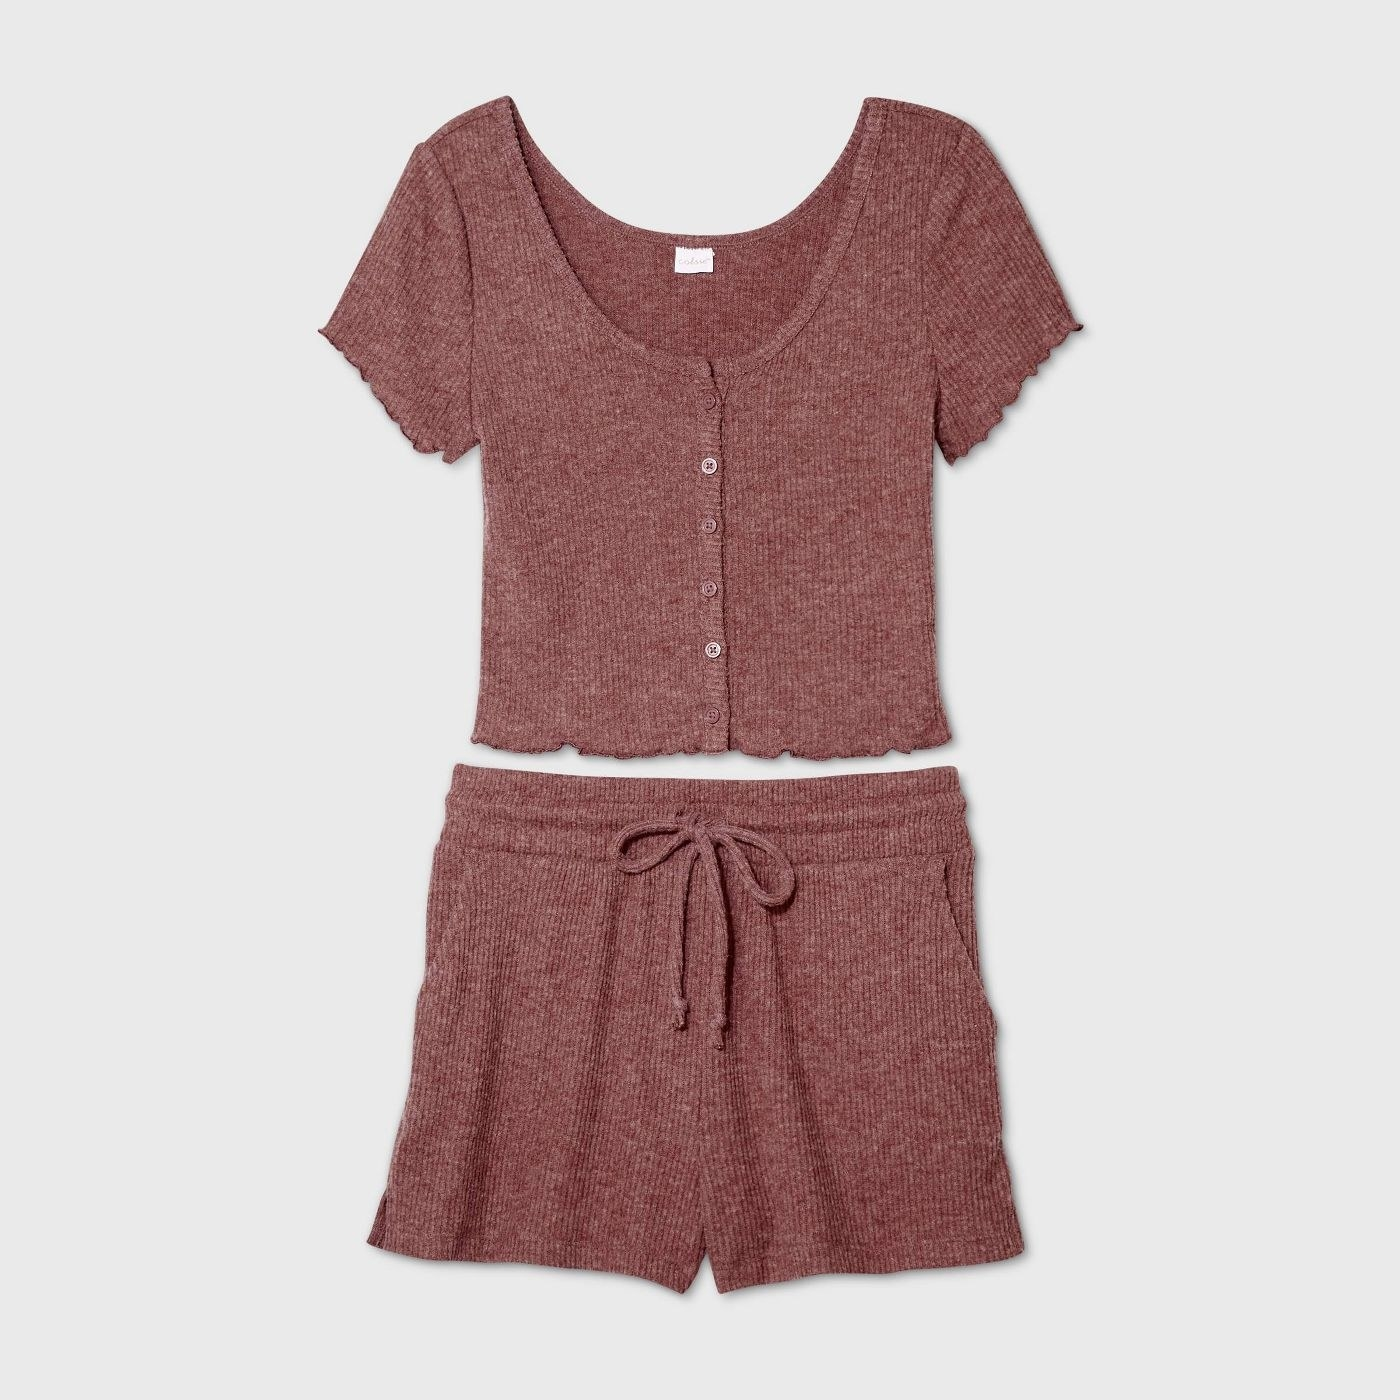 the rose-colored matching pajama set